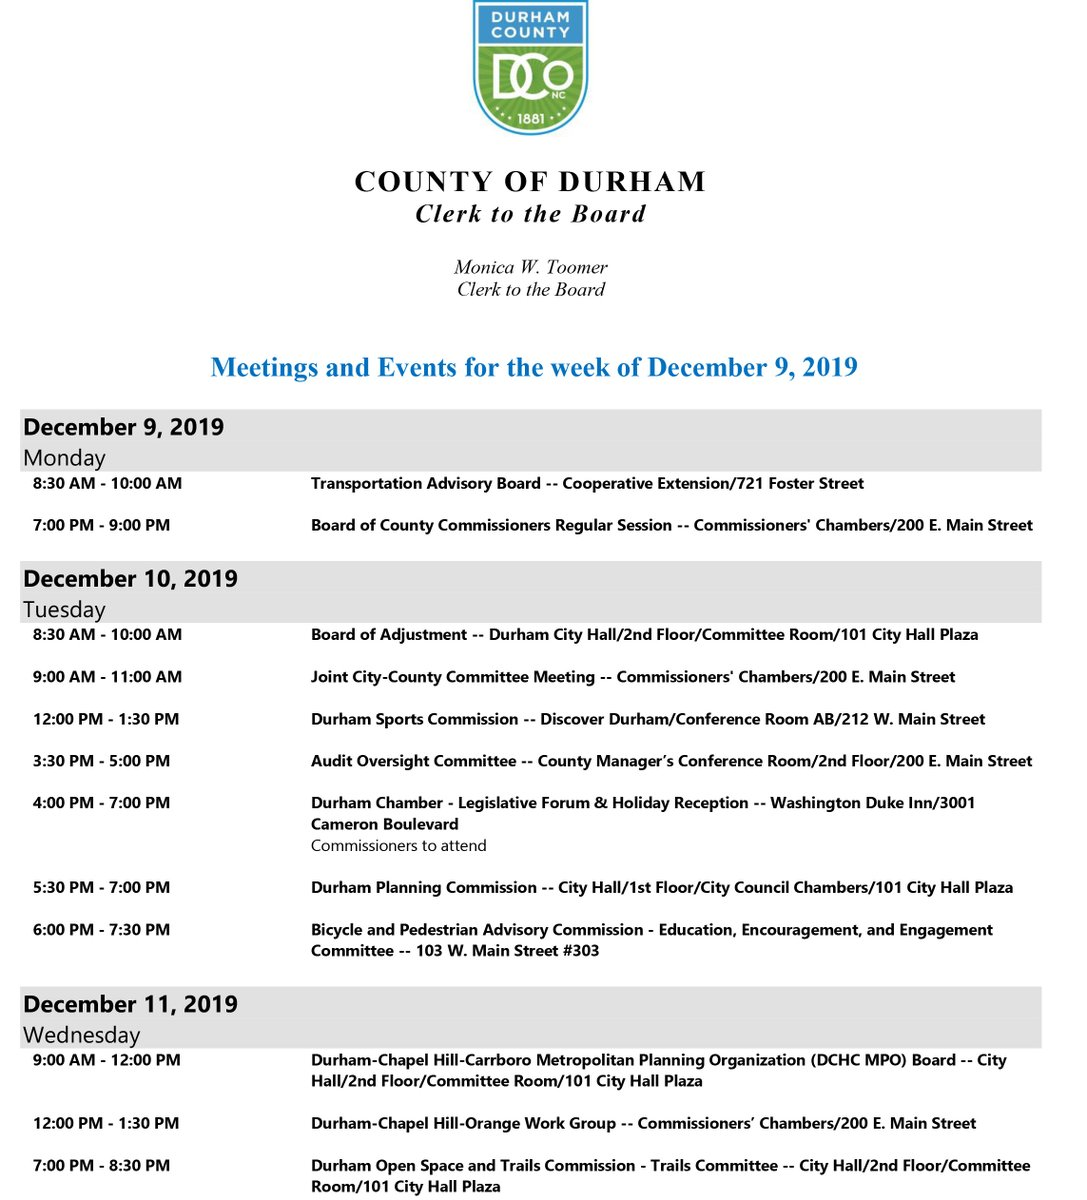 Interested in finding out what's going on in #localgov & the Durham Board of County Commissioners? Here is the BOCC's schedule for the week of Dec. 9-15, 2019. ⤵️  To view the entire Durham County meetings & events calendar, go here: